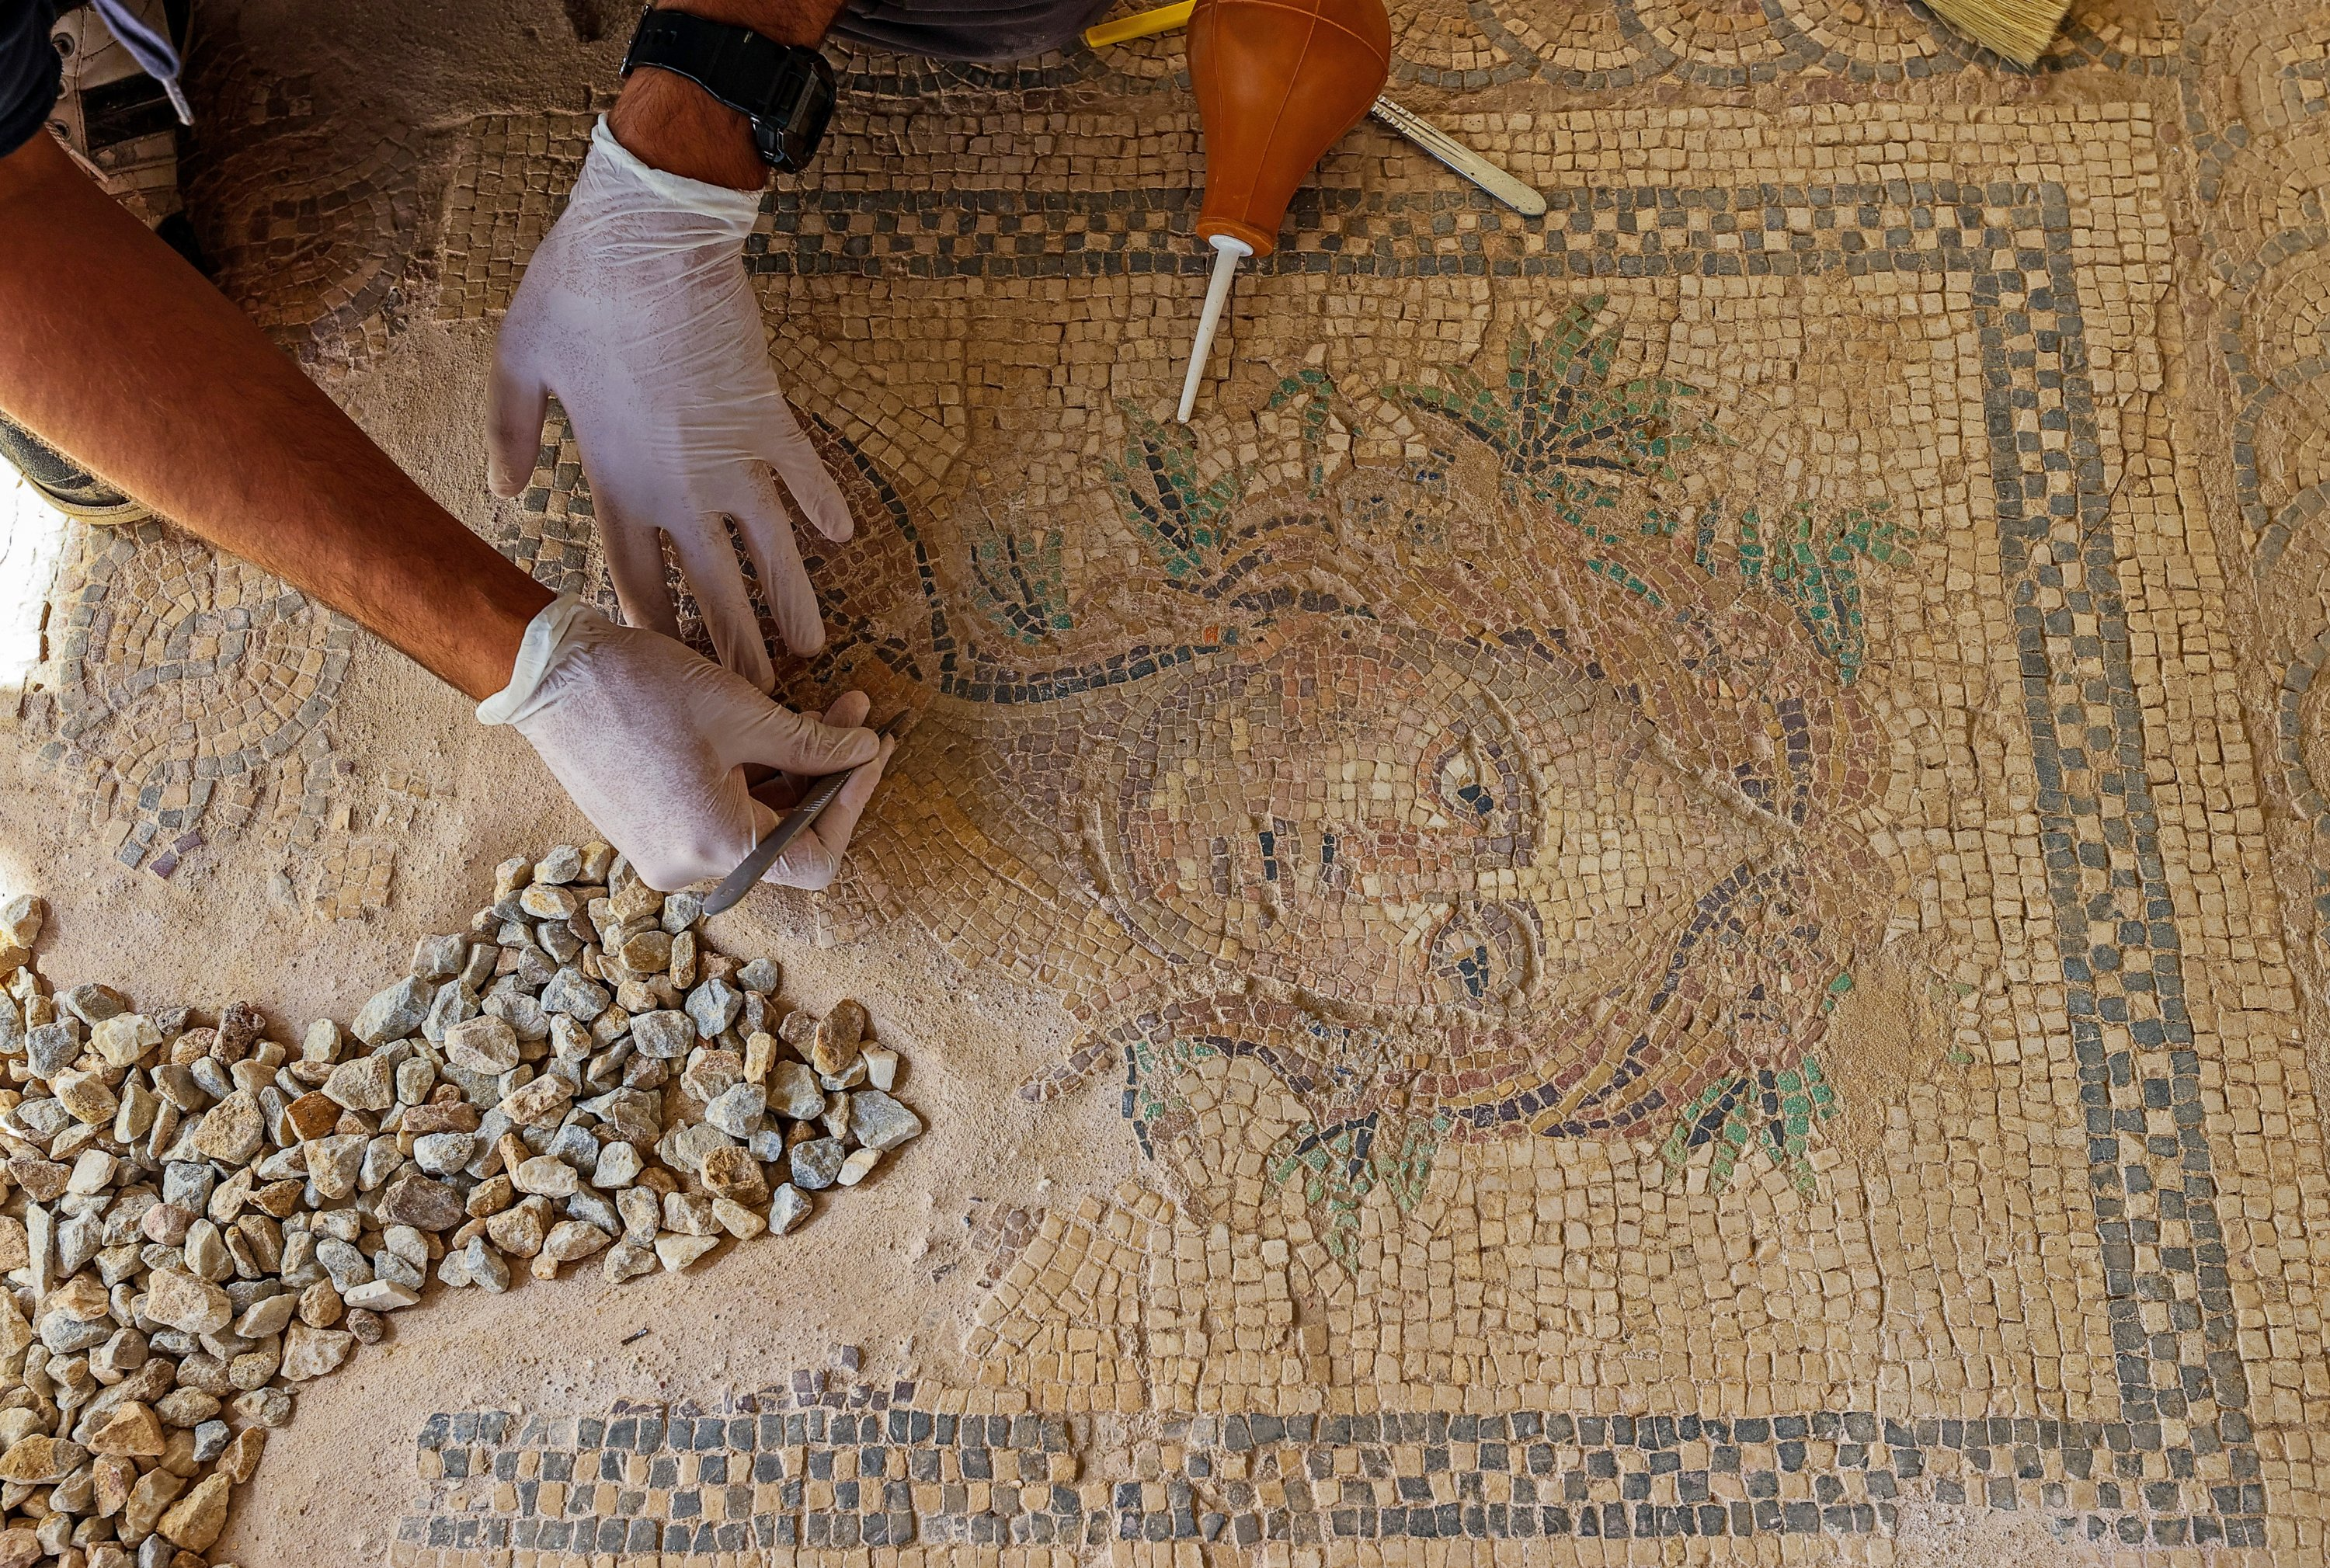 A restorer works on a mosaic in the ancient city of Metropolis, Izmir, western Turkey, Oct. 12, 2021. (AA Photo)